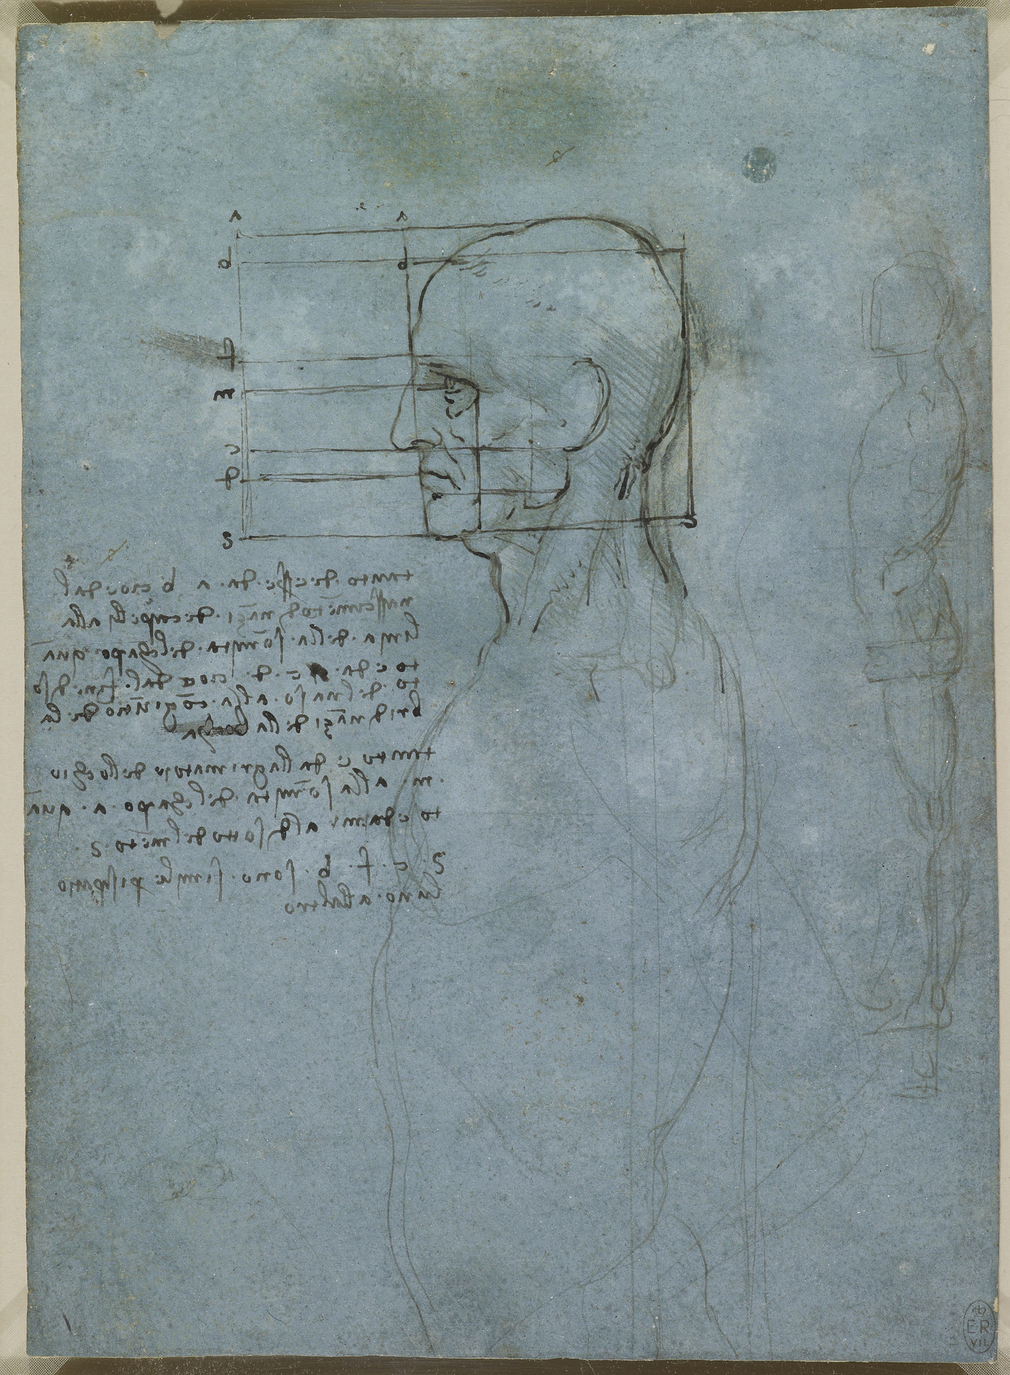 A drawing of a nude man seen to below the waist, turned in profile to the left. His head is more finished and squared for proportion. There is also a note on the proportions of the head. To the right is a full-length figure of a nude man standing in profi